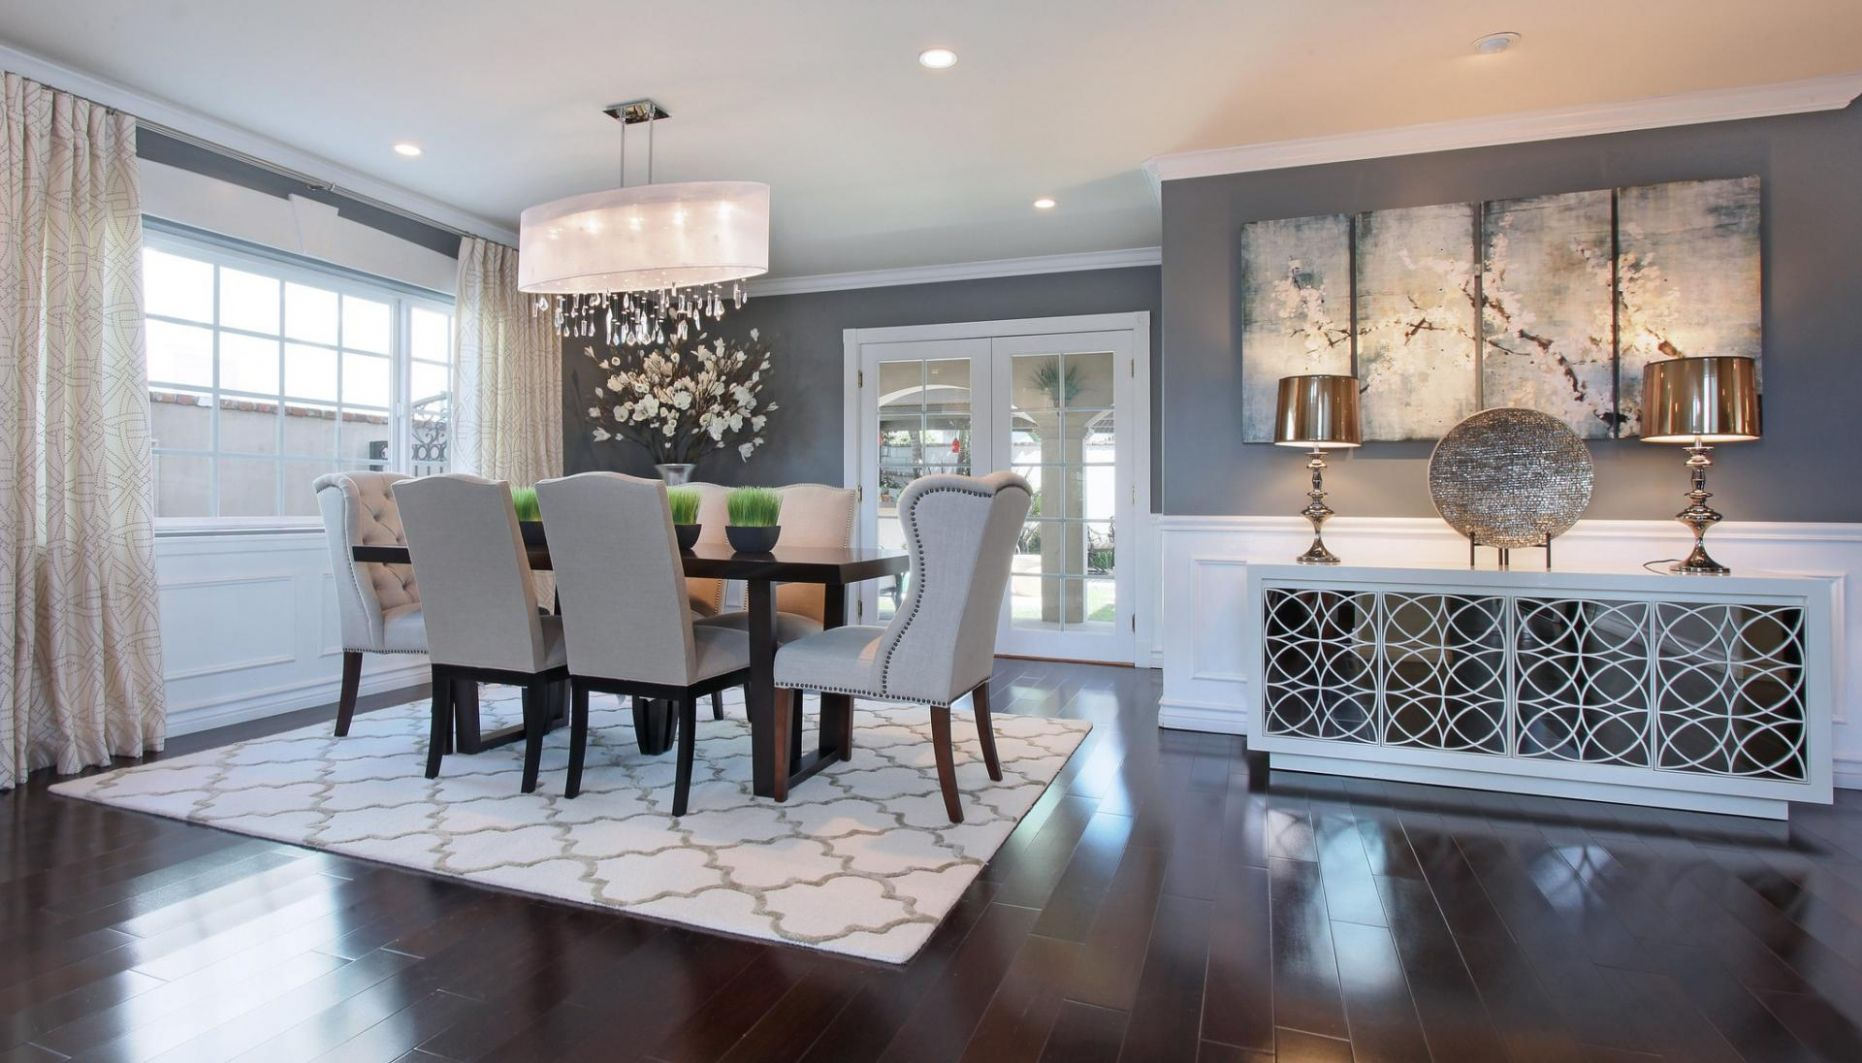 12 Marvelous Gray Dining Room Ideas - Rhythm of the Home - dining room ideas with grey walls